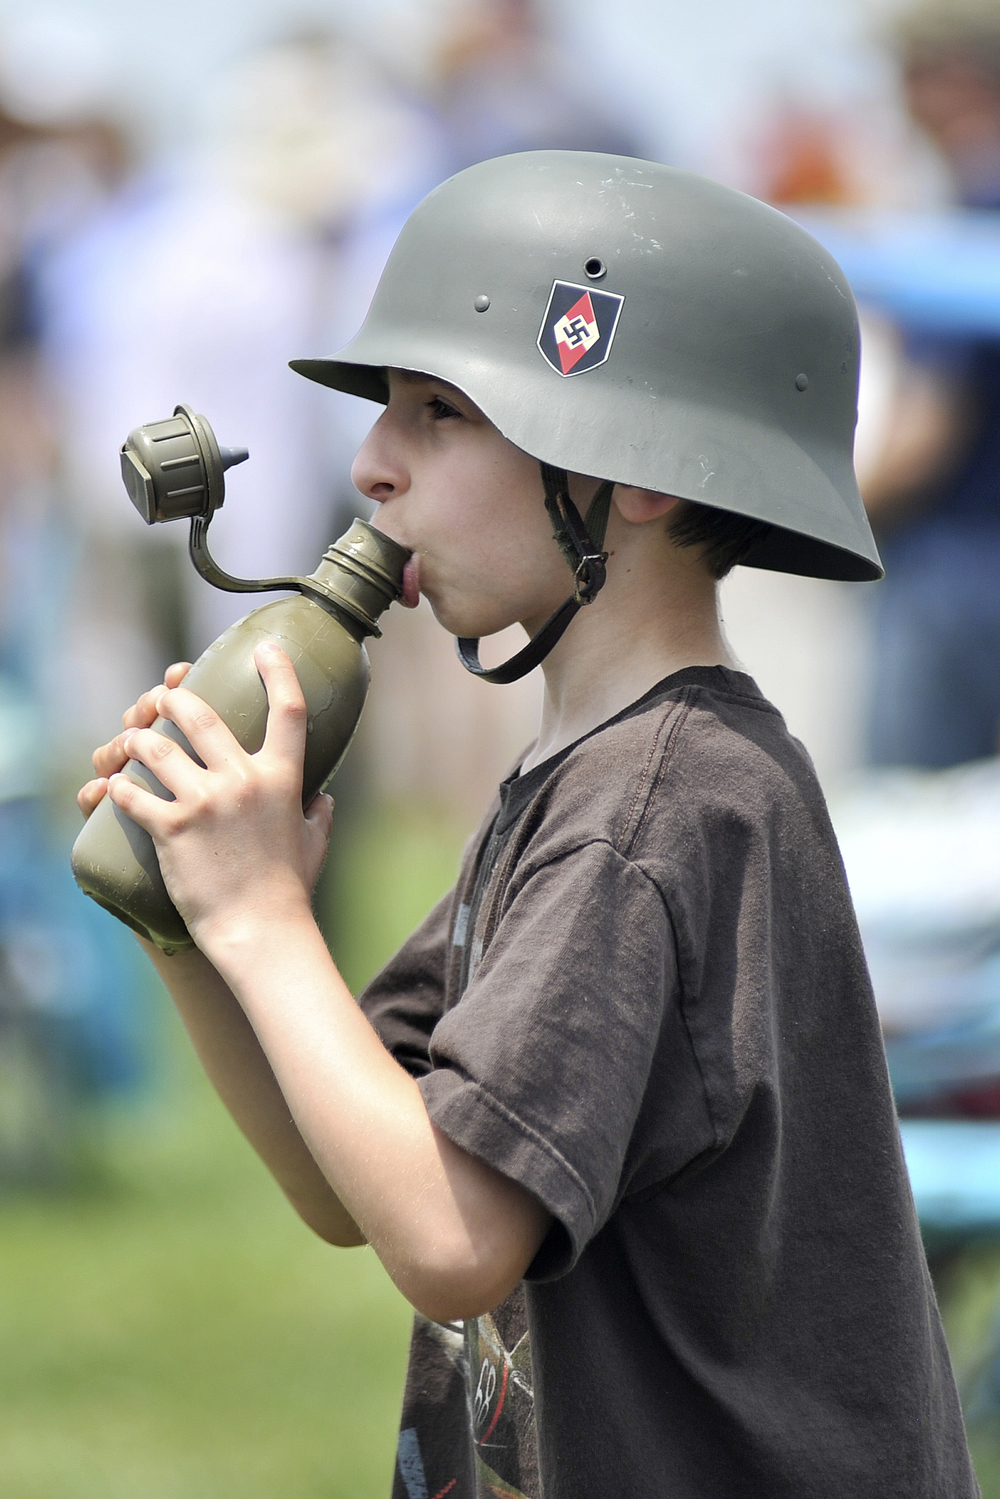 Eddie Rowell, 8, drinks water out of a canteen at the World War II Weekend in Reading, PA, on June 4, 2016. (Reading Eagle: Sarah Stier)